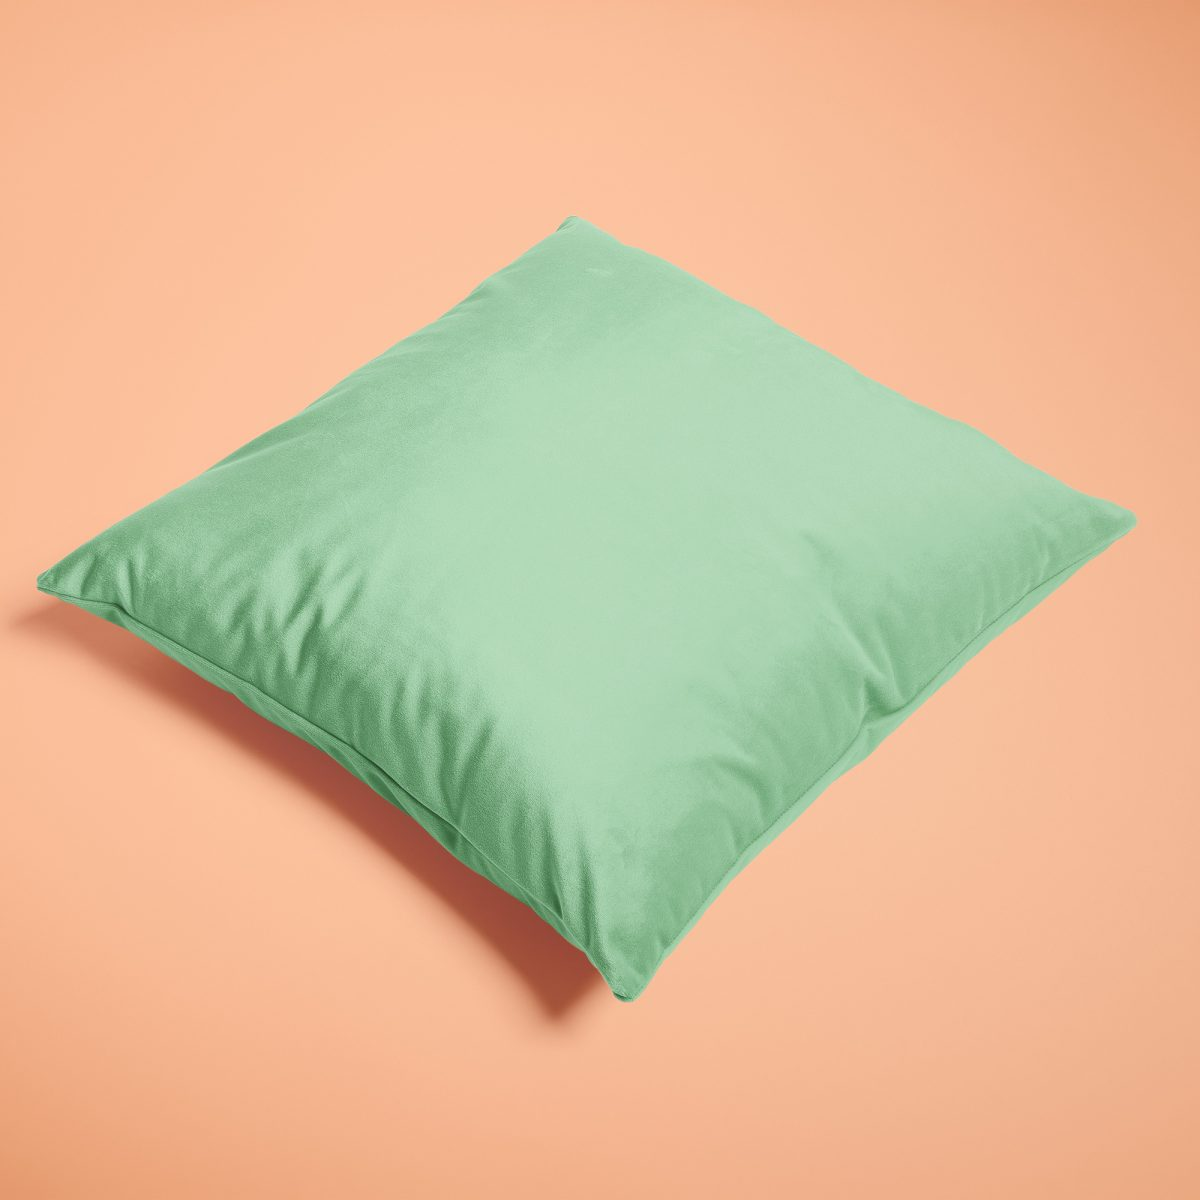 mint-green-covers-of-the-rainbow-2